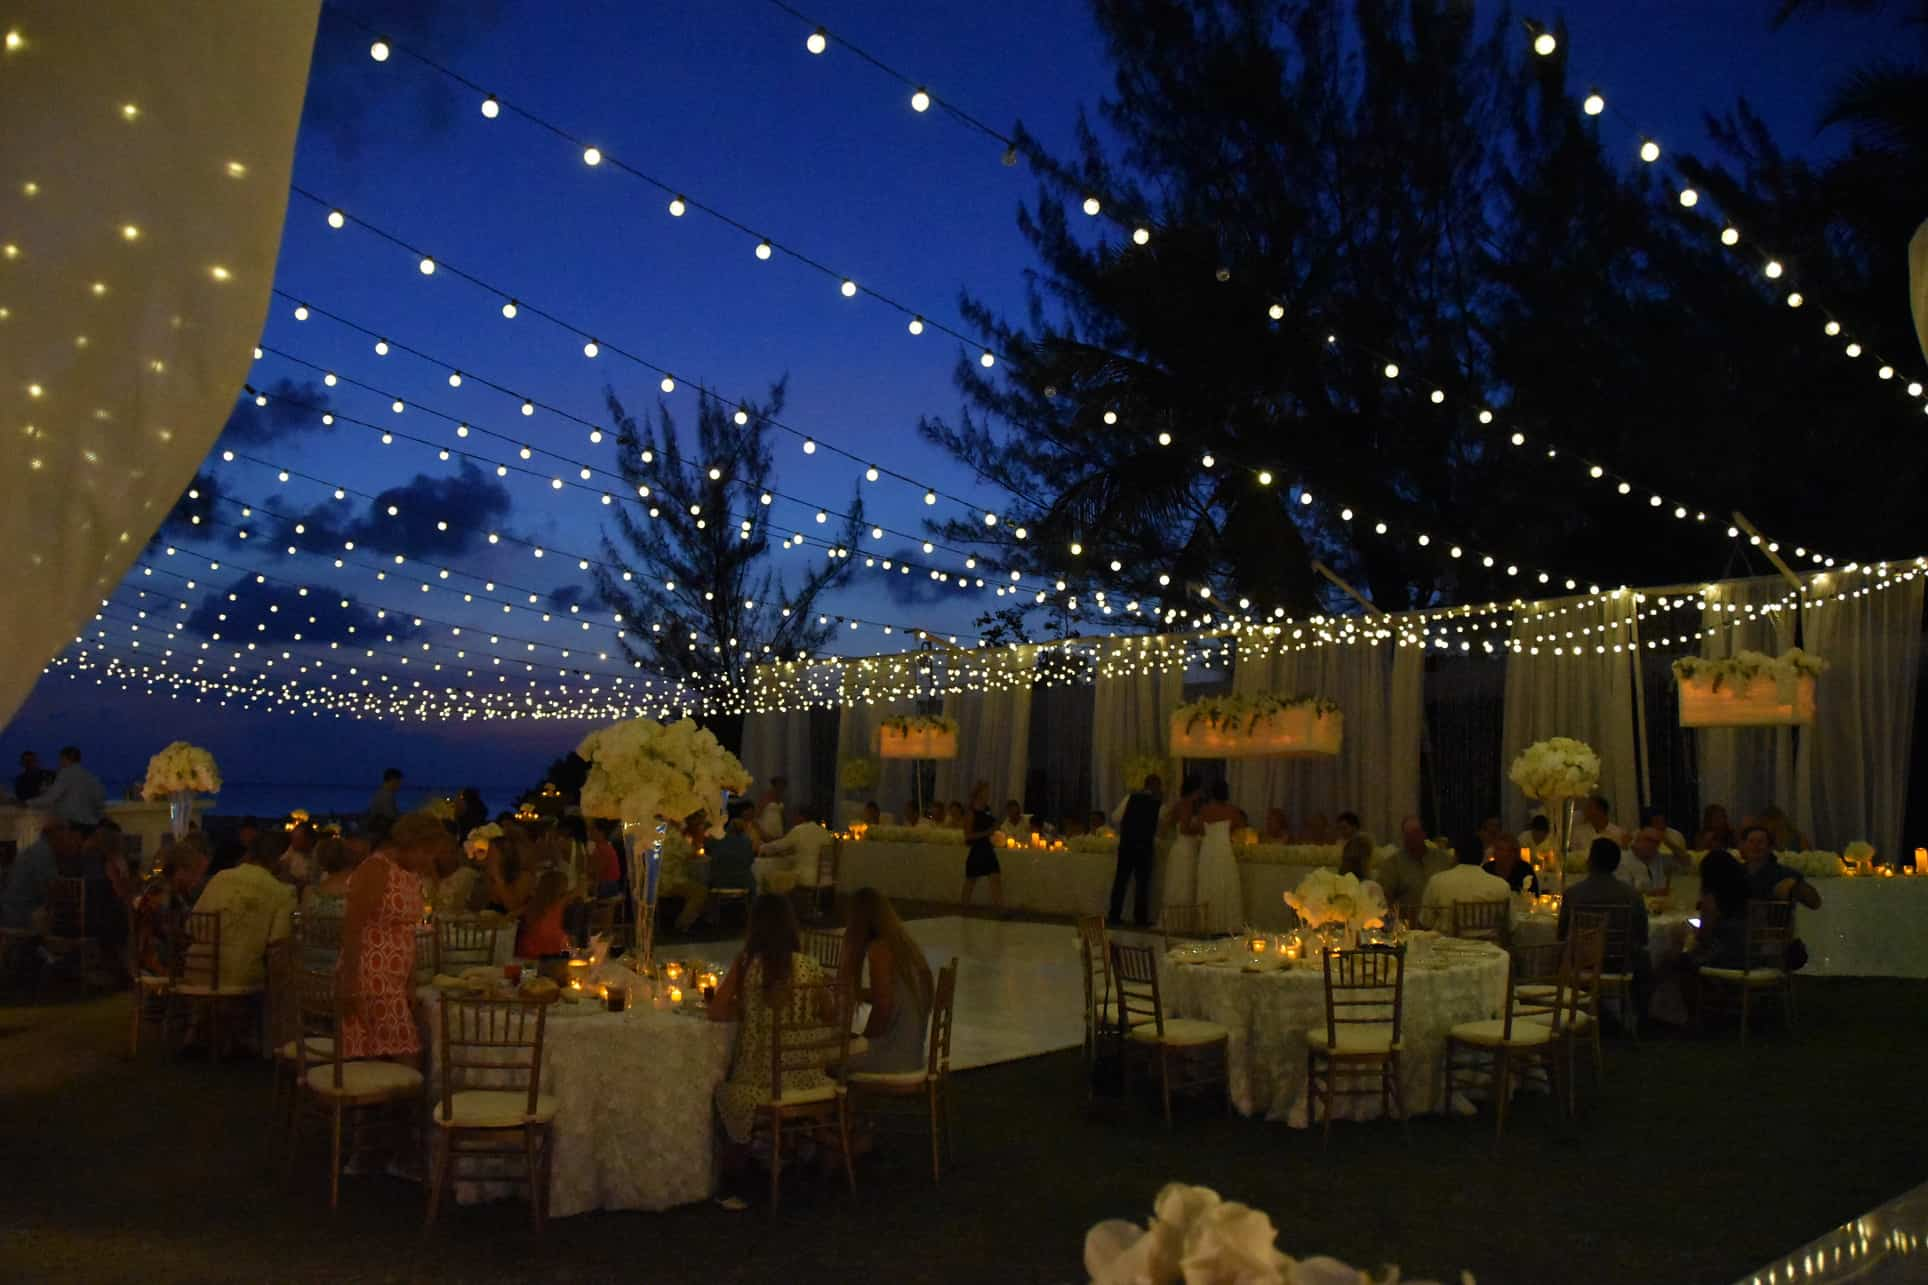 wedding under the moonlight reception beach, twinkle lights, fairy lights, party globe lights